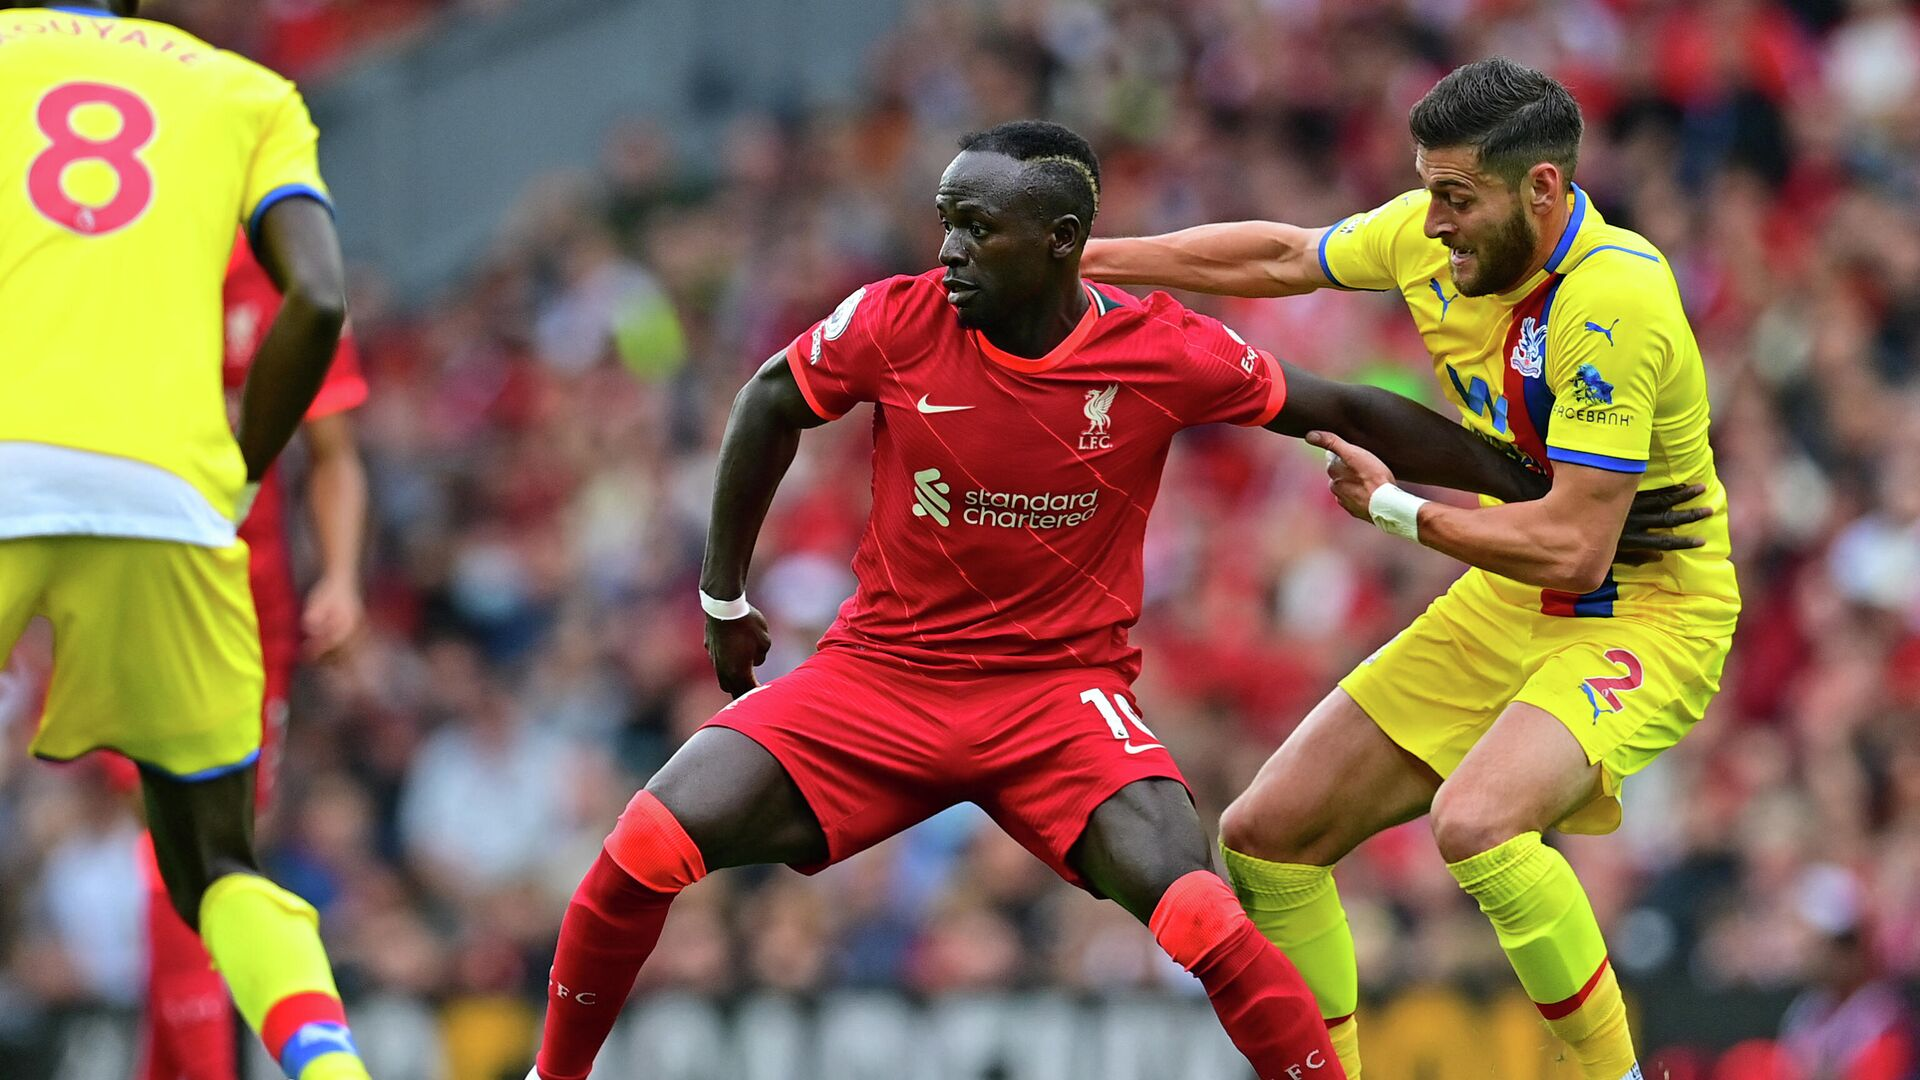 Liverpool's Senegalese striker Sadio Mane (C) vies with Crystal Palace's English defender Joel Ward (R) during the English Premier League football match between Liverpool and Crystal Palace at Anfield in Liverpool, north west England on September 18, 2021. (Photo by Paul ELLIS / AFP) / RESTRICTED TO EDITORIAL USE. No use with unauthorized audio, video, data, fixture lists, club/league logos or 'live' services. Online in-match use limited to 120 images. An additional 40 images may be used in extra time. No video emulation. Social media in-match use limited to 120 images. An additional 40 images may be used in extra time. No use in betting publications, games or single club/league/player publications. /  - РИА Новости, 1920, 18.09.2021